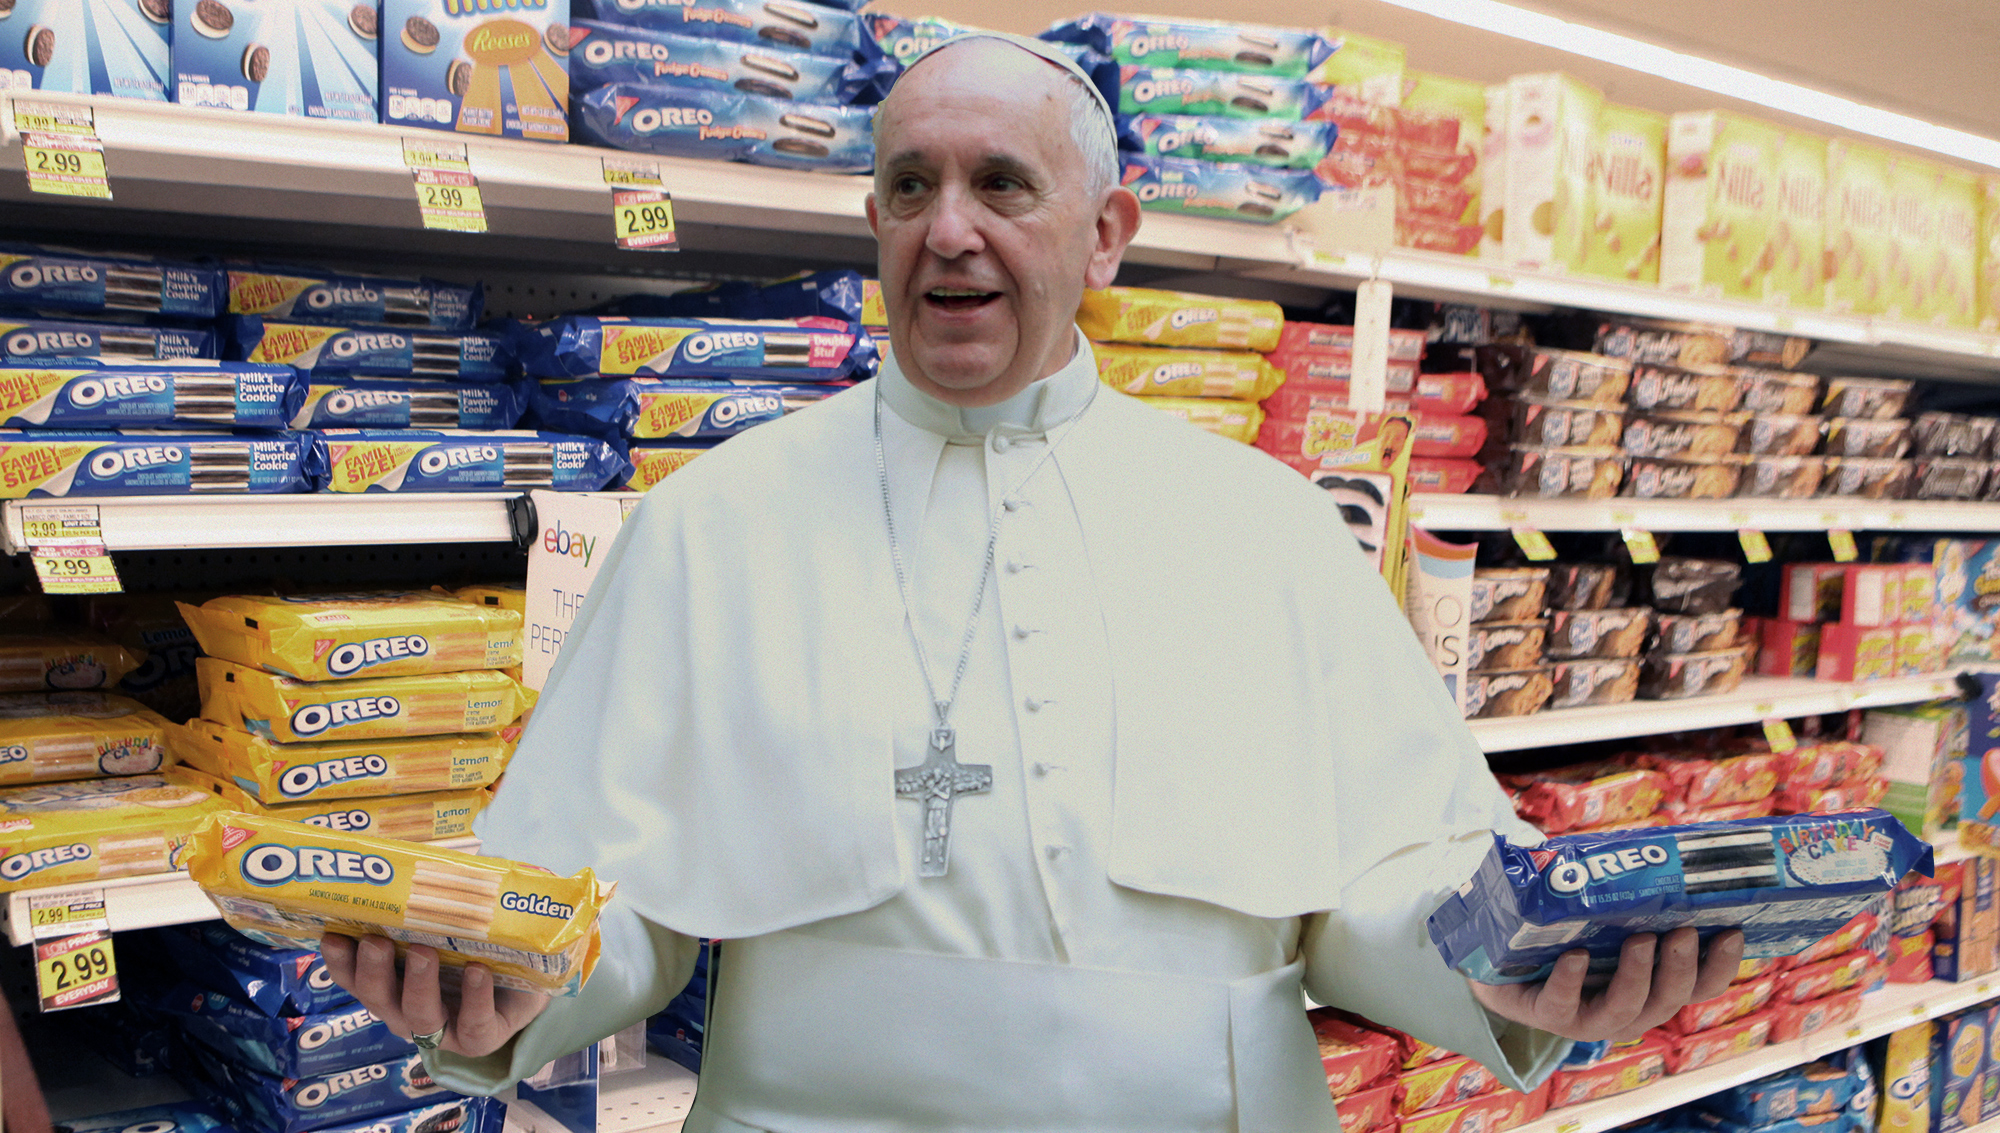 Pope Francis Reverses Position on Capitalism After Seeing Wide Variety of American Oreos                               September 22, 2015